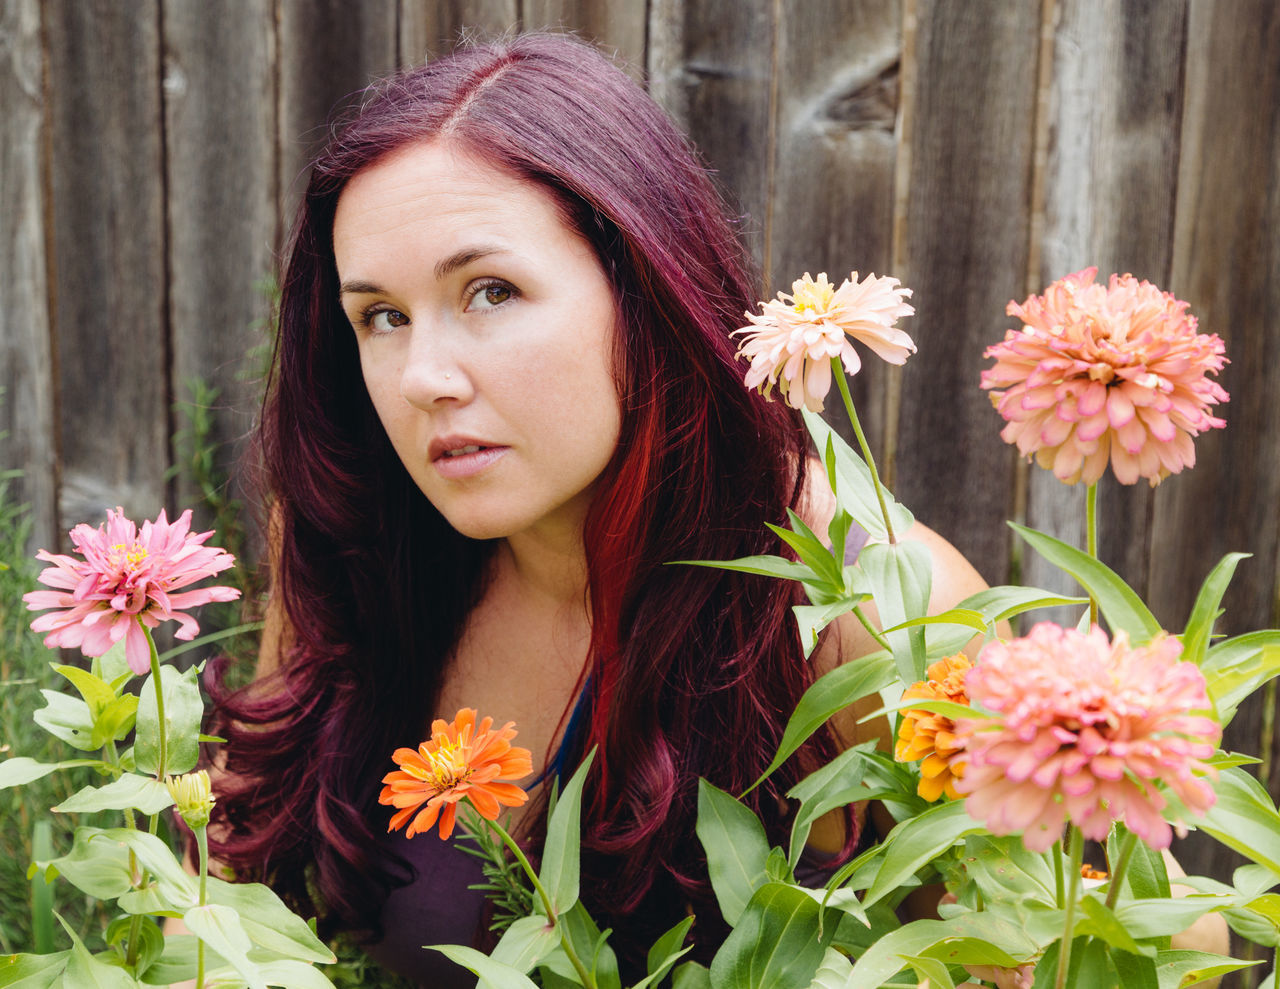 Beautiful Redhead Woman Amidst Pot Marigold Flowers Against Fence